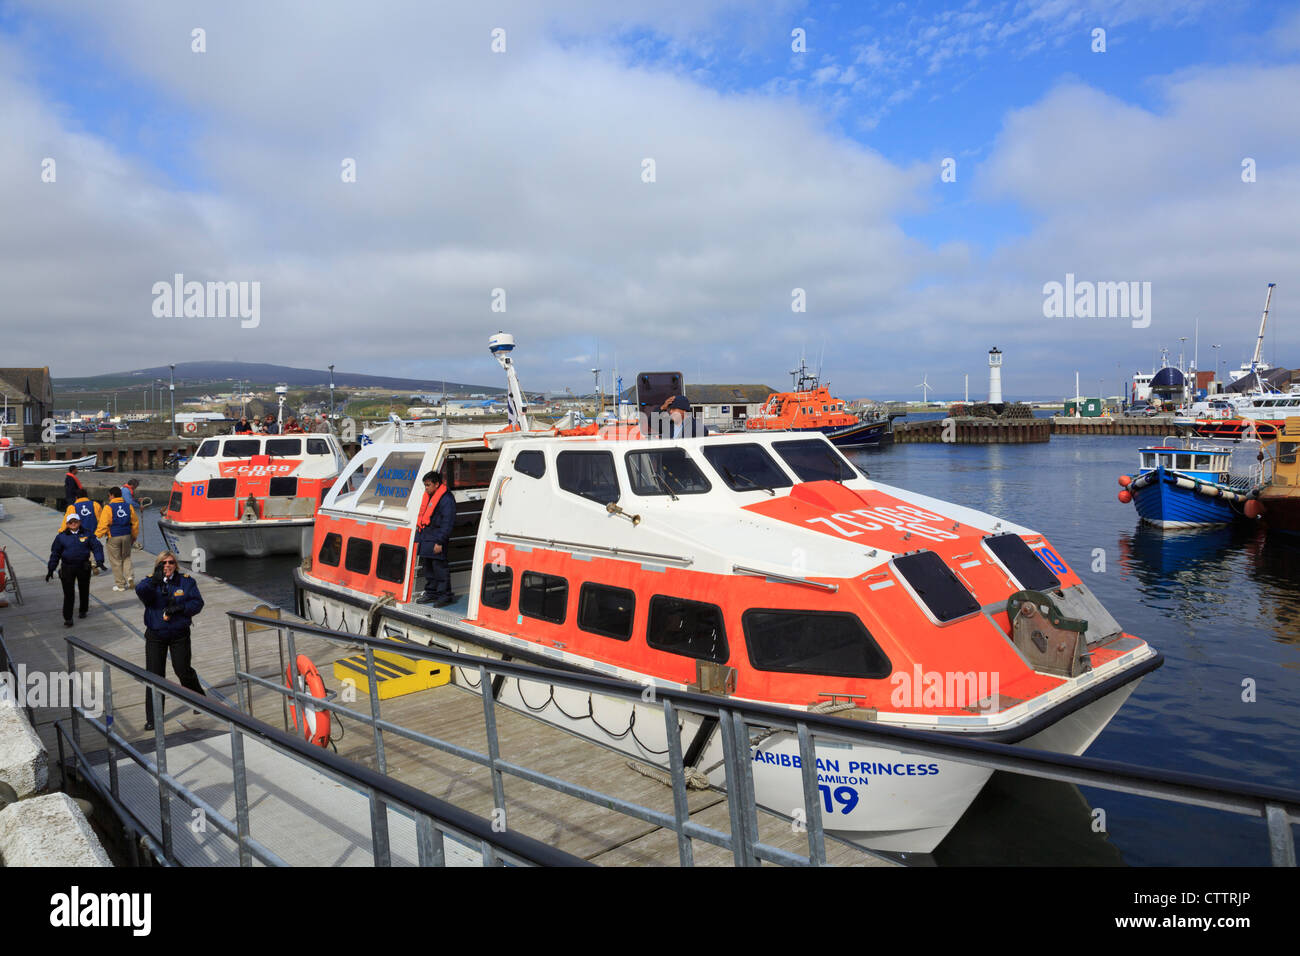 Landing craft arriving in harbour from Caribbean Princess cruise ship visiting Kirkwall, Orkney Mainland, Scotland, - Stock Image